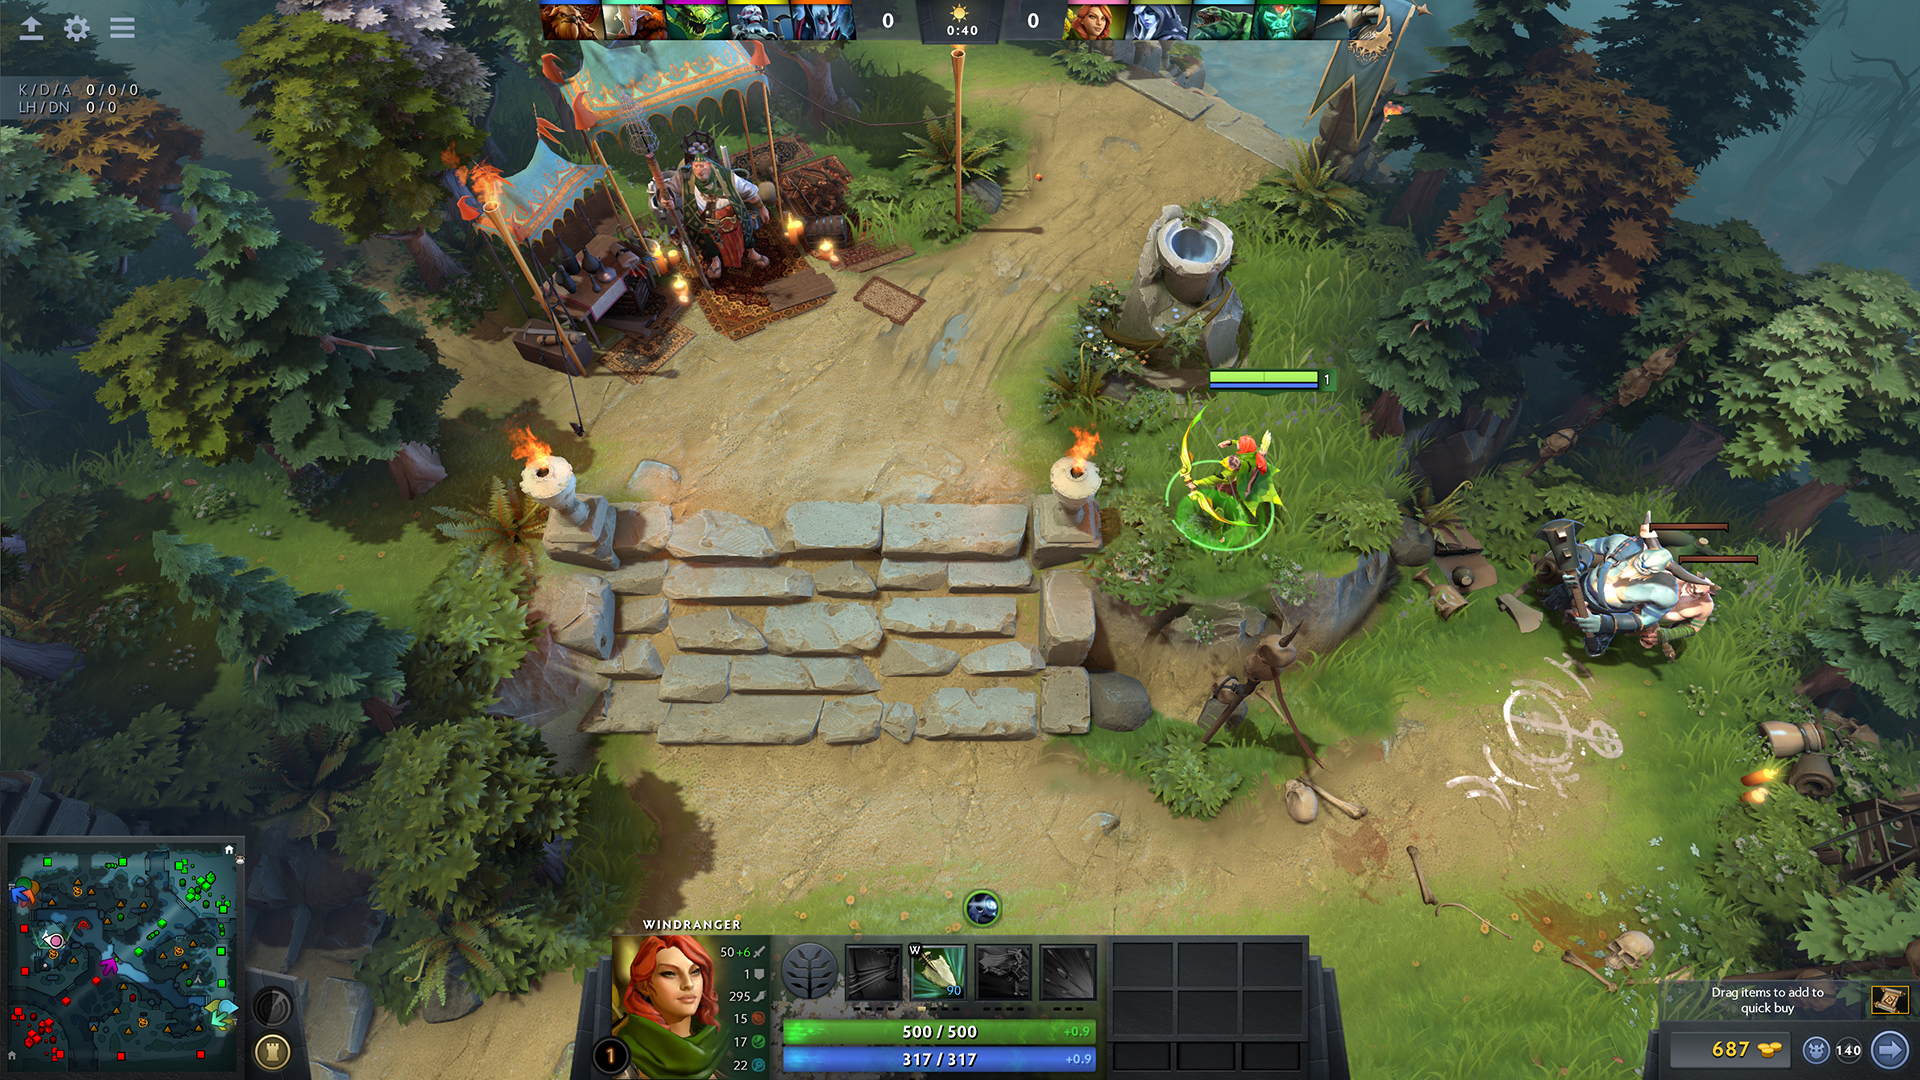 dota 2 download free full version for pc steam